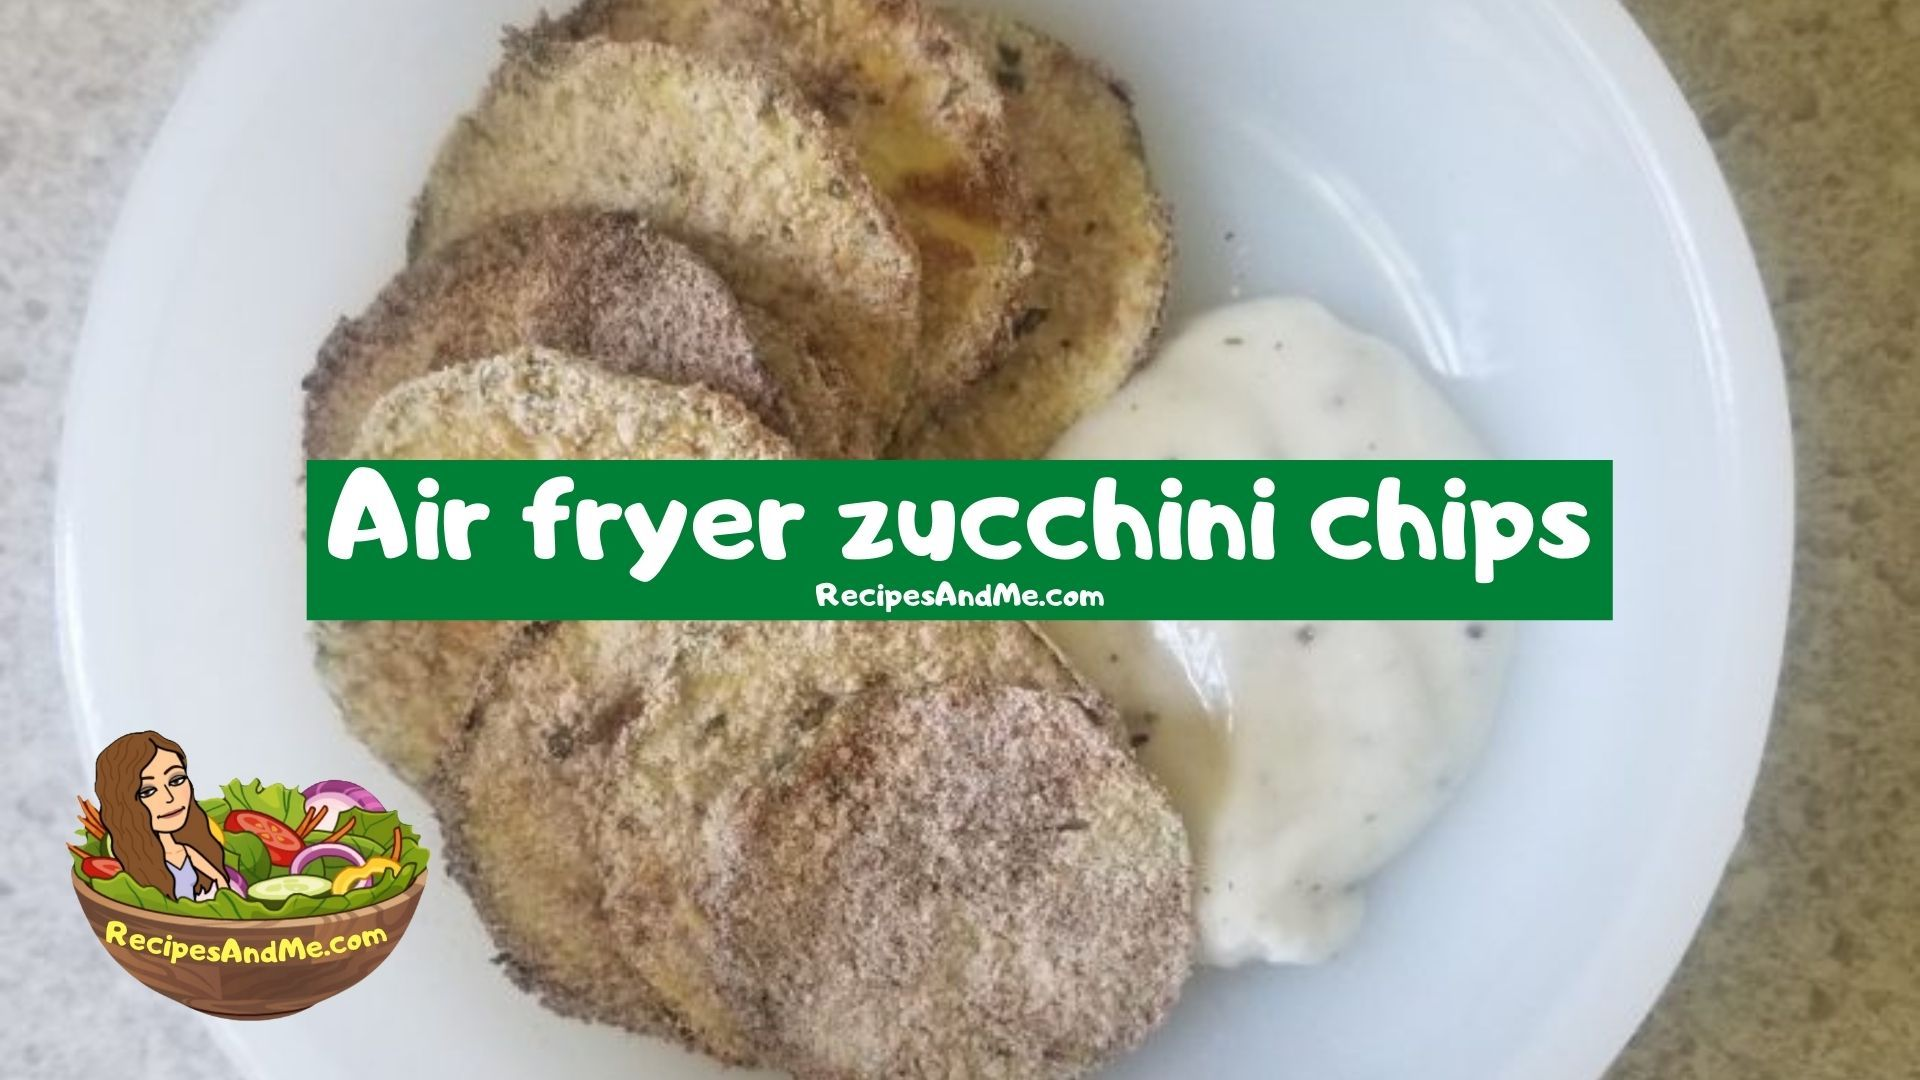 HEALTHY SNACKS-Vegetable chips-Air fryer zucchini chips-RecipesAndMe